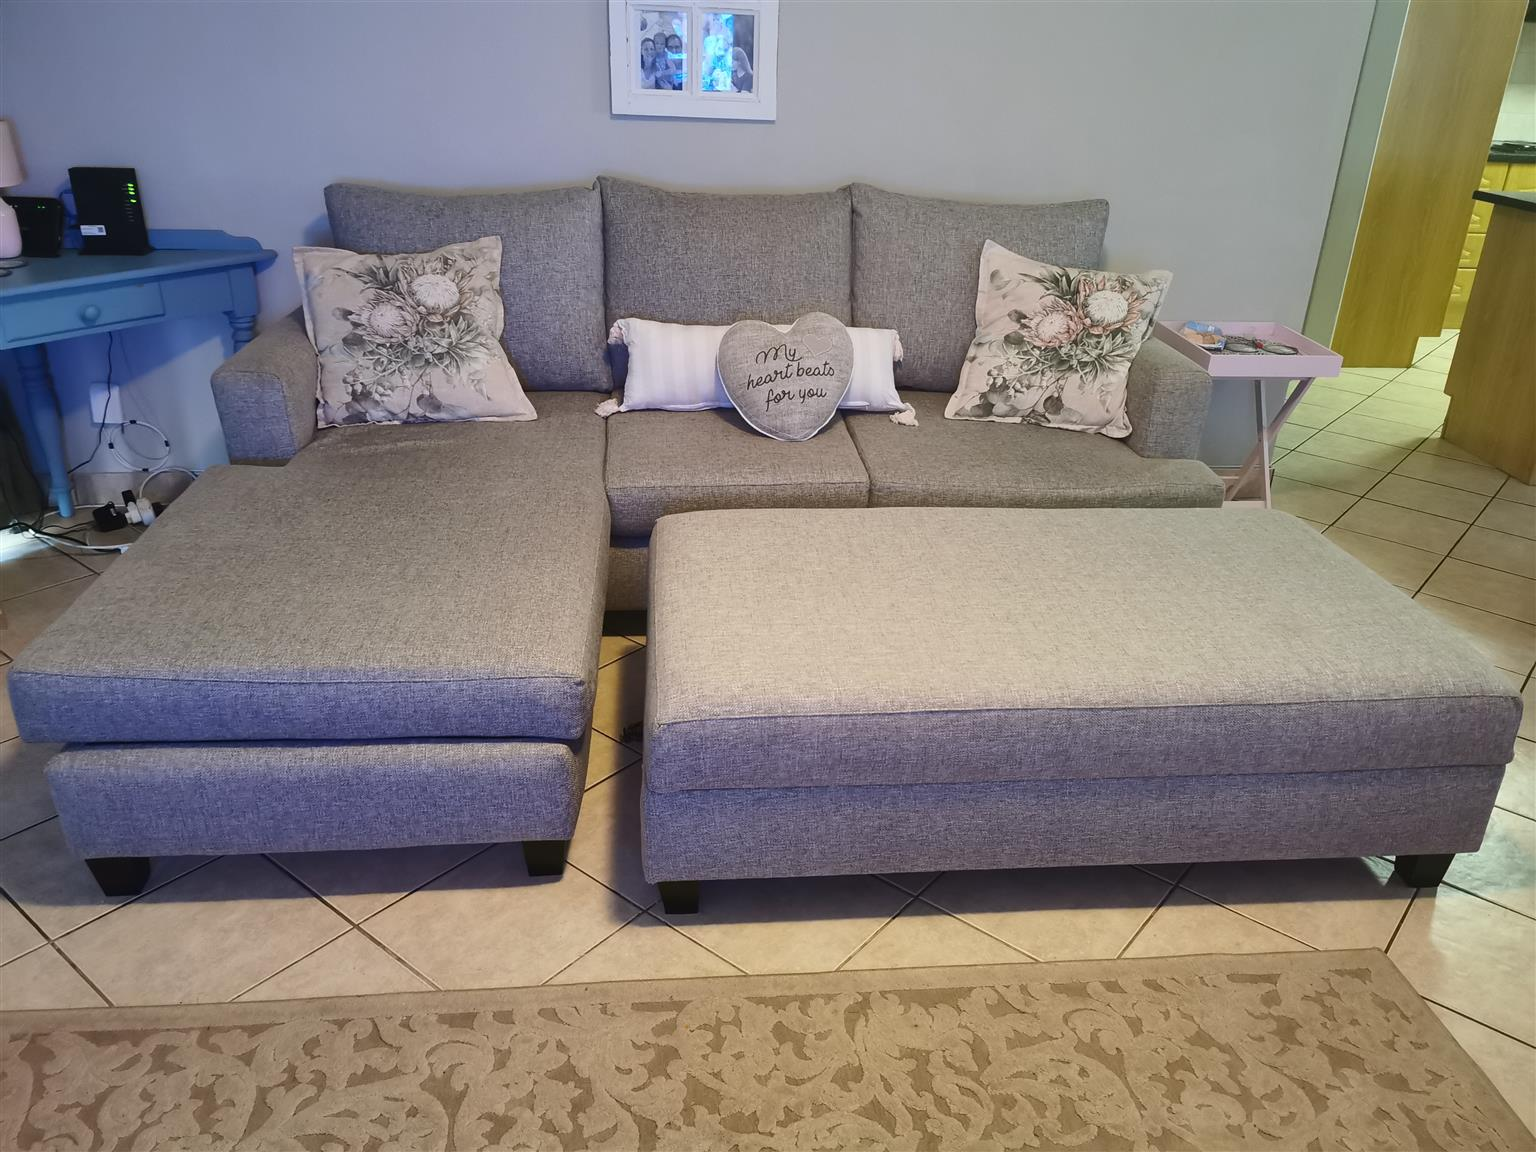 L Shape Couch with storage ottoman to match